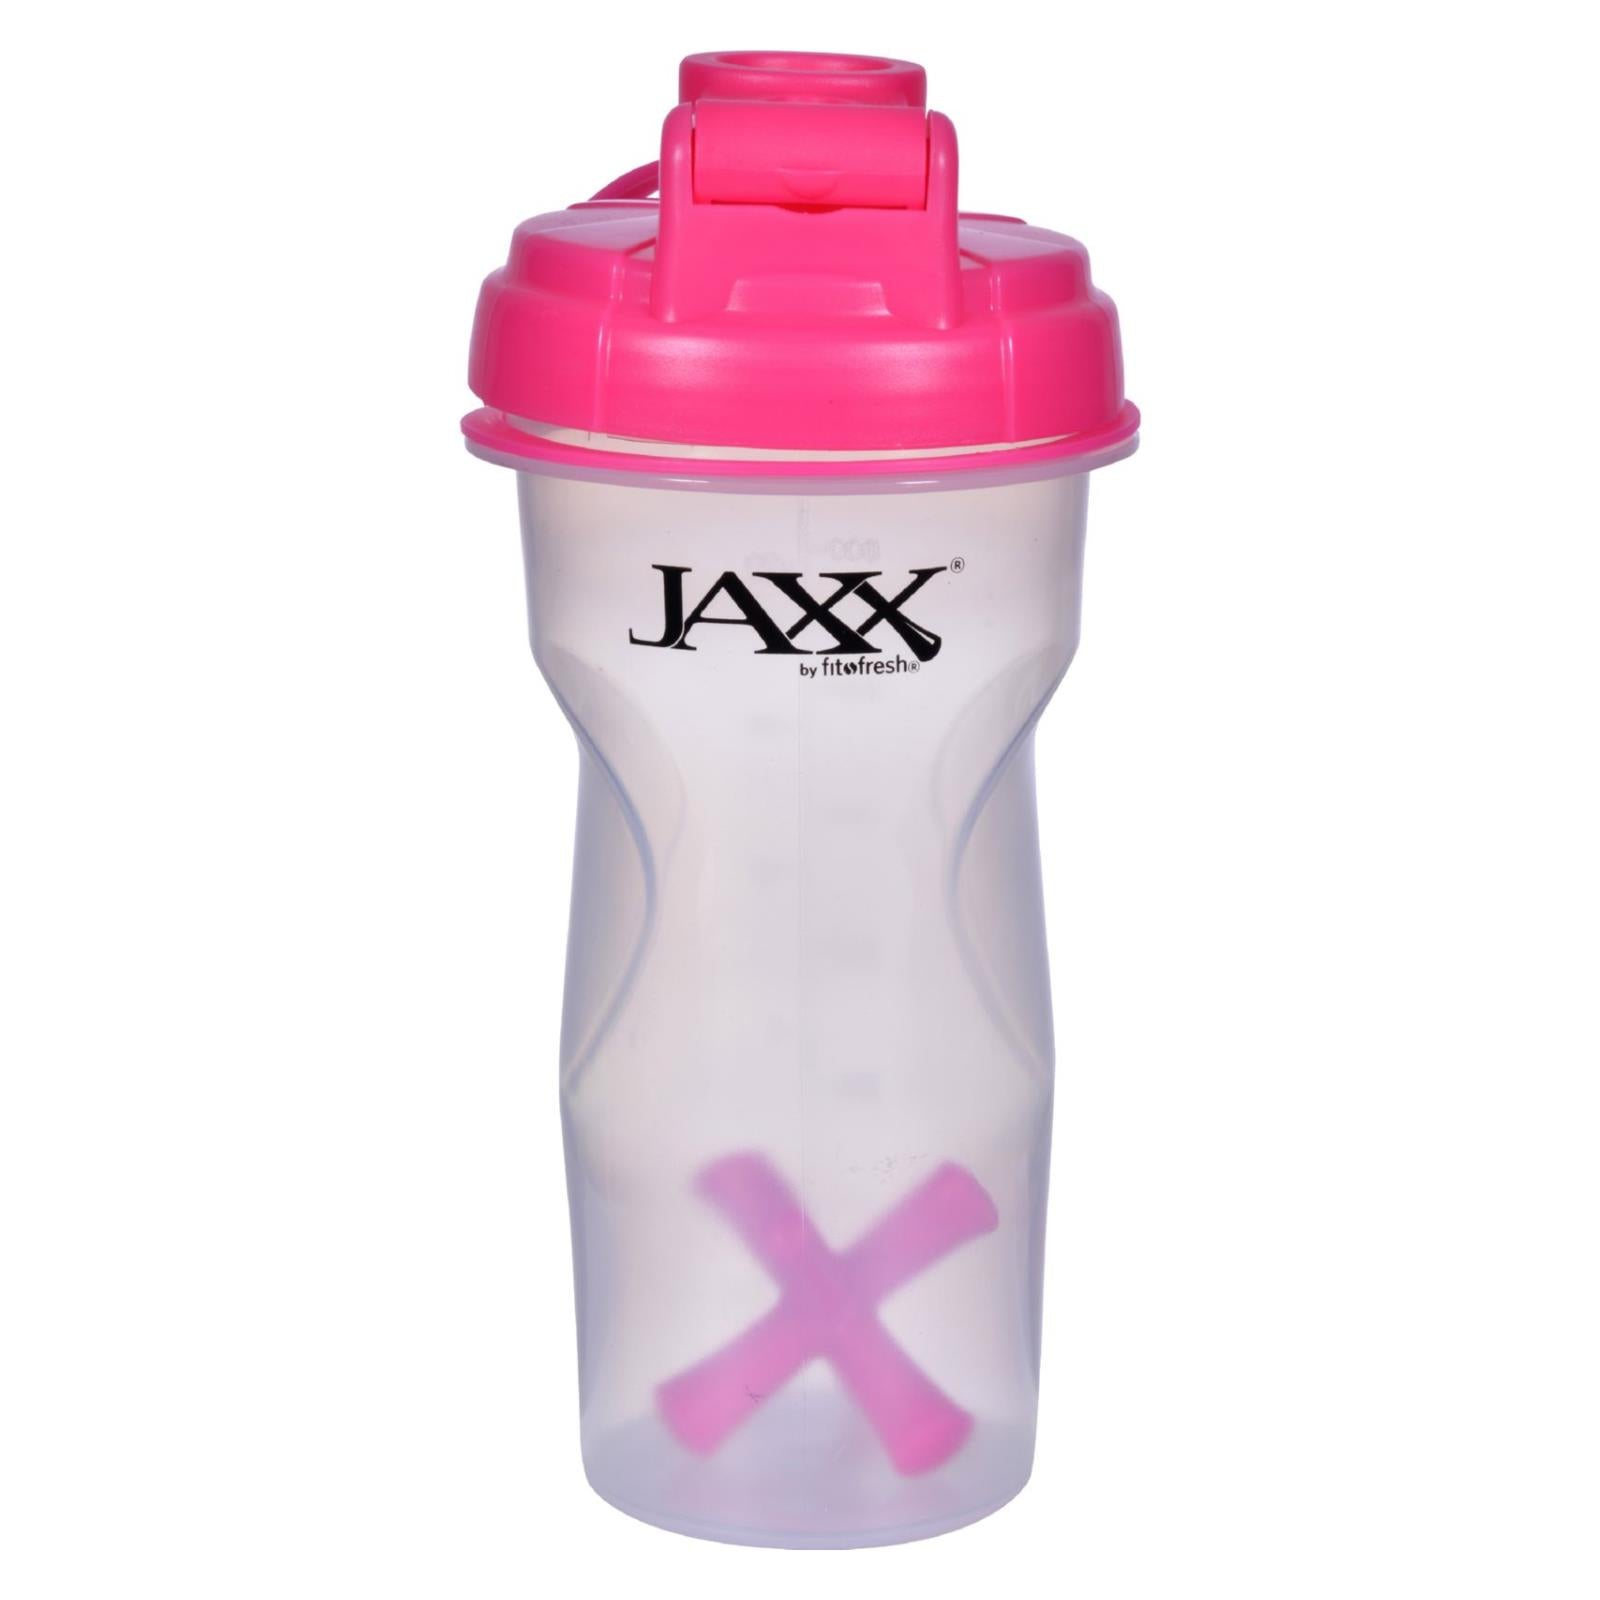 Buy Fit and Fresh Jaxx Shaker - Pink - 28 oz - Shaker Bottles from Veroeco.com